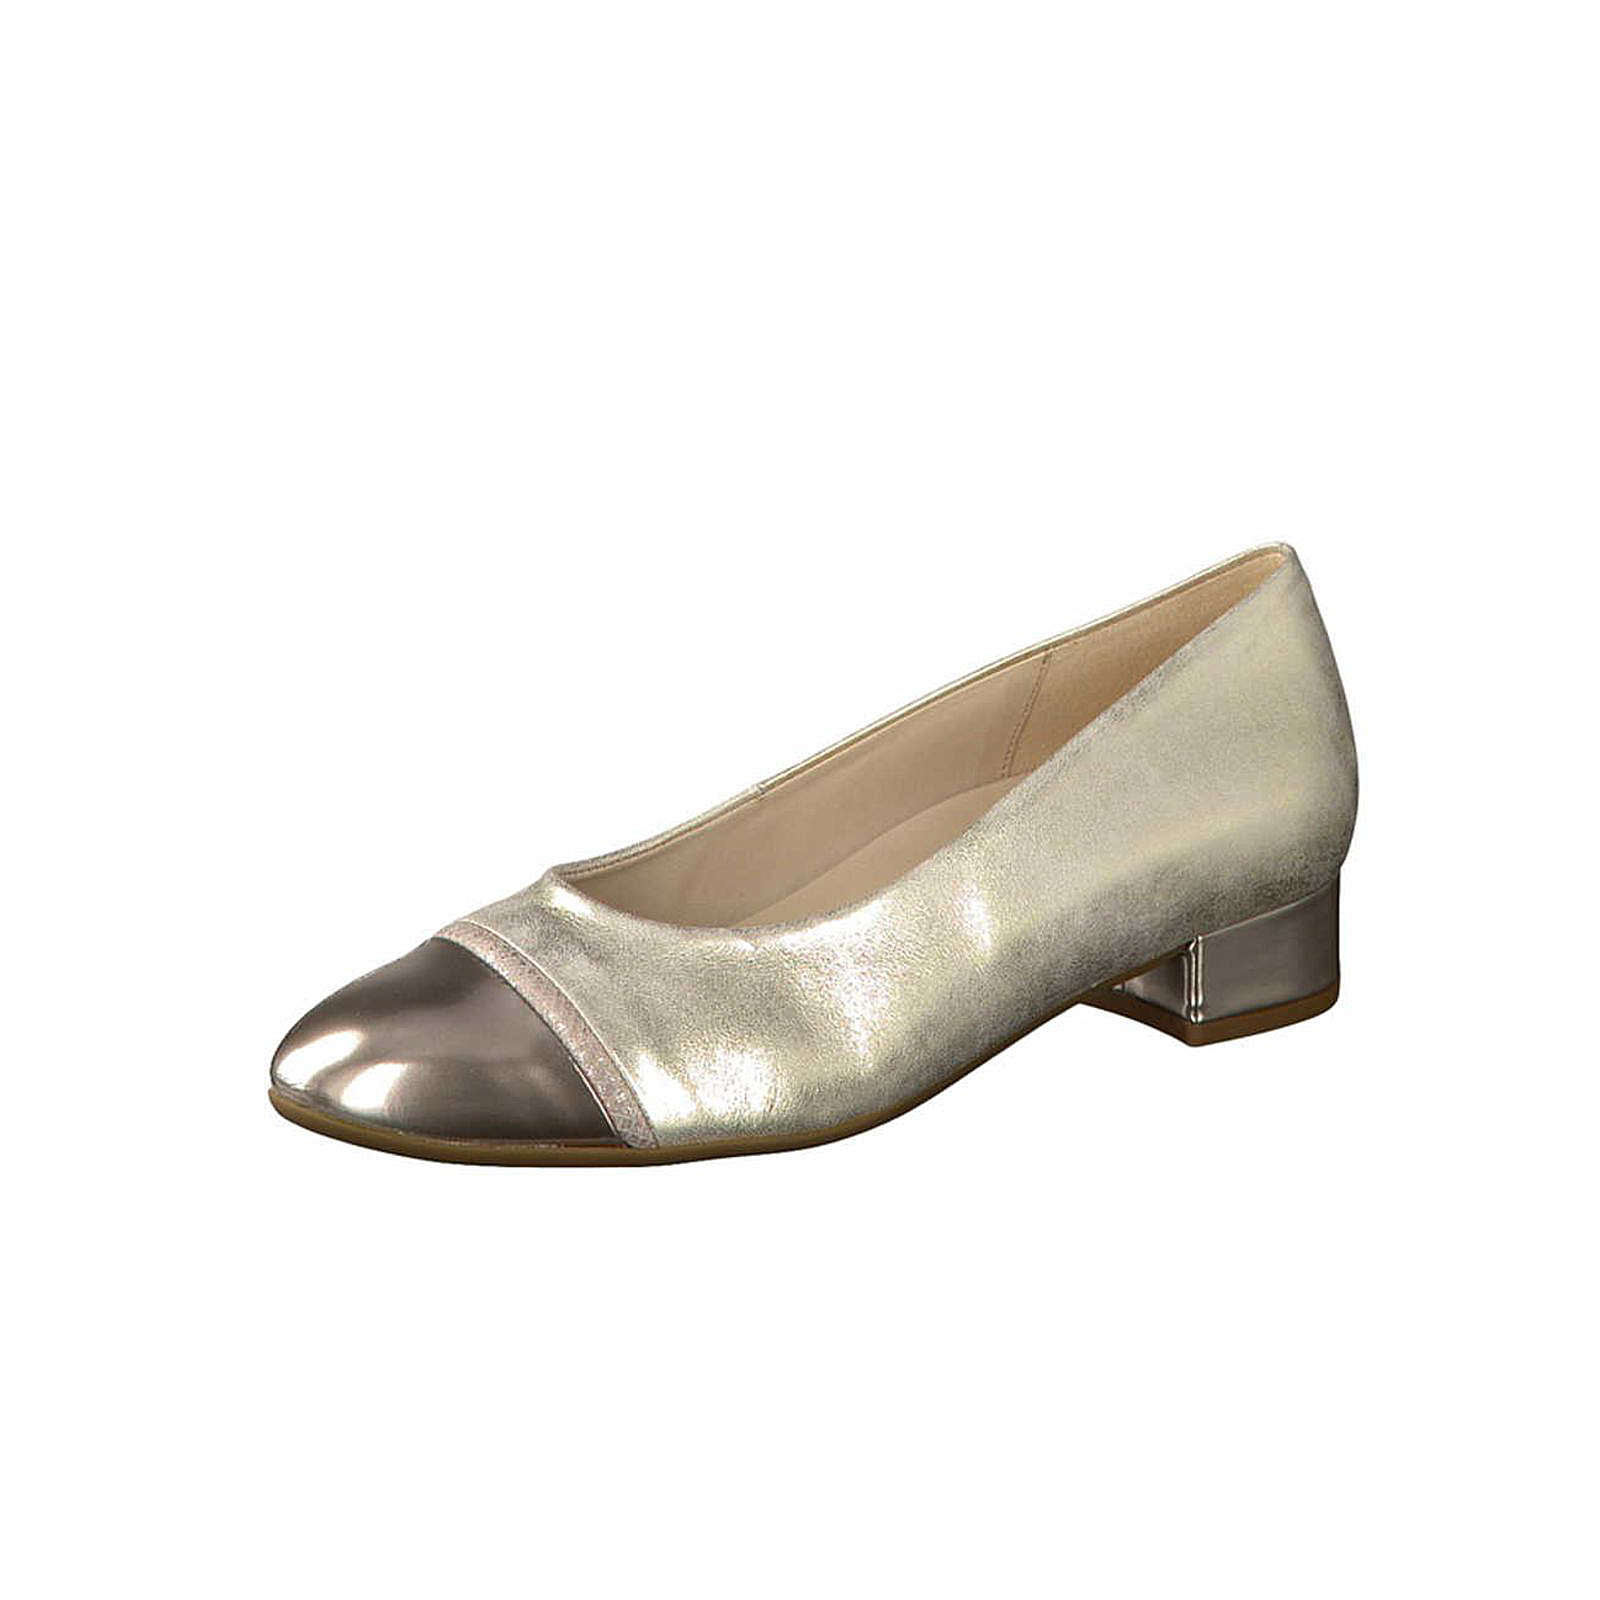 Gabor Pumps metall bronze Damen Gr. 38